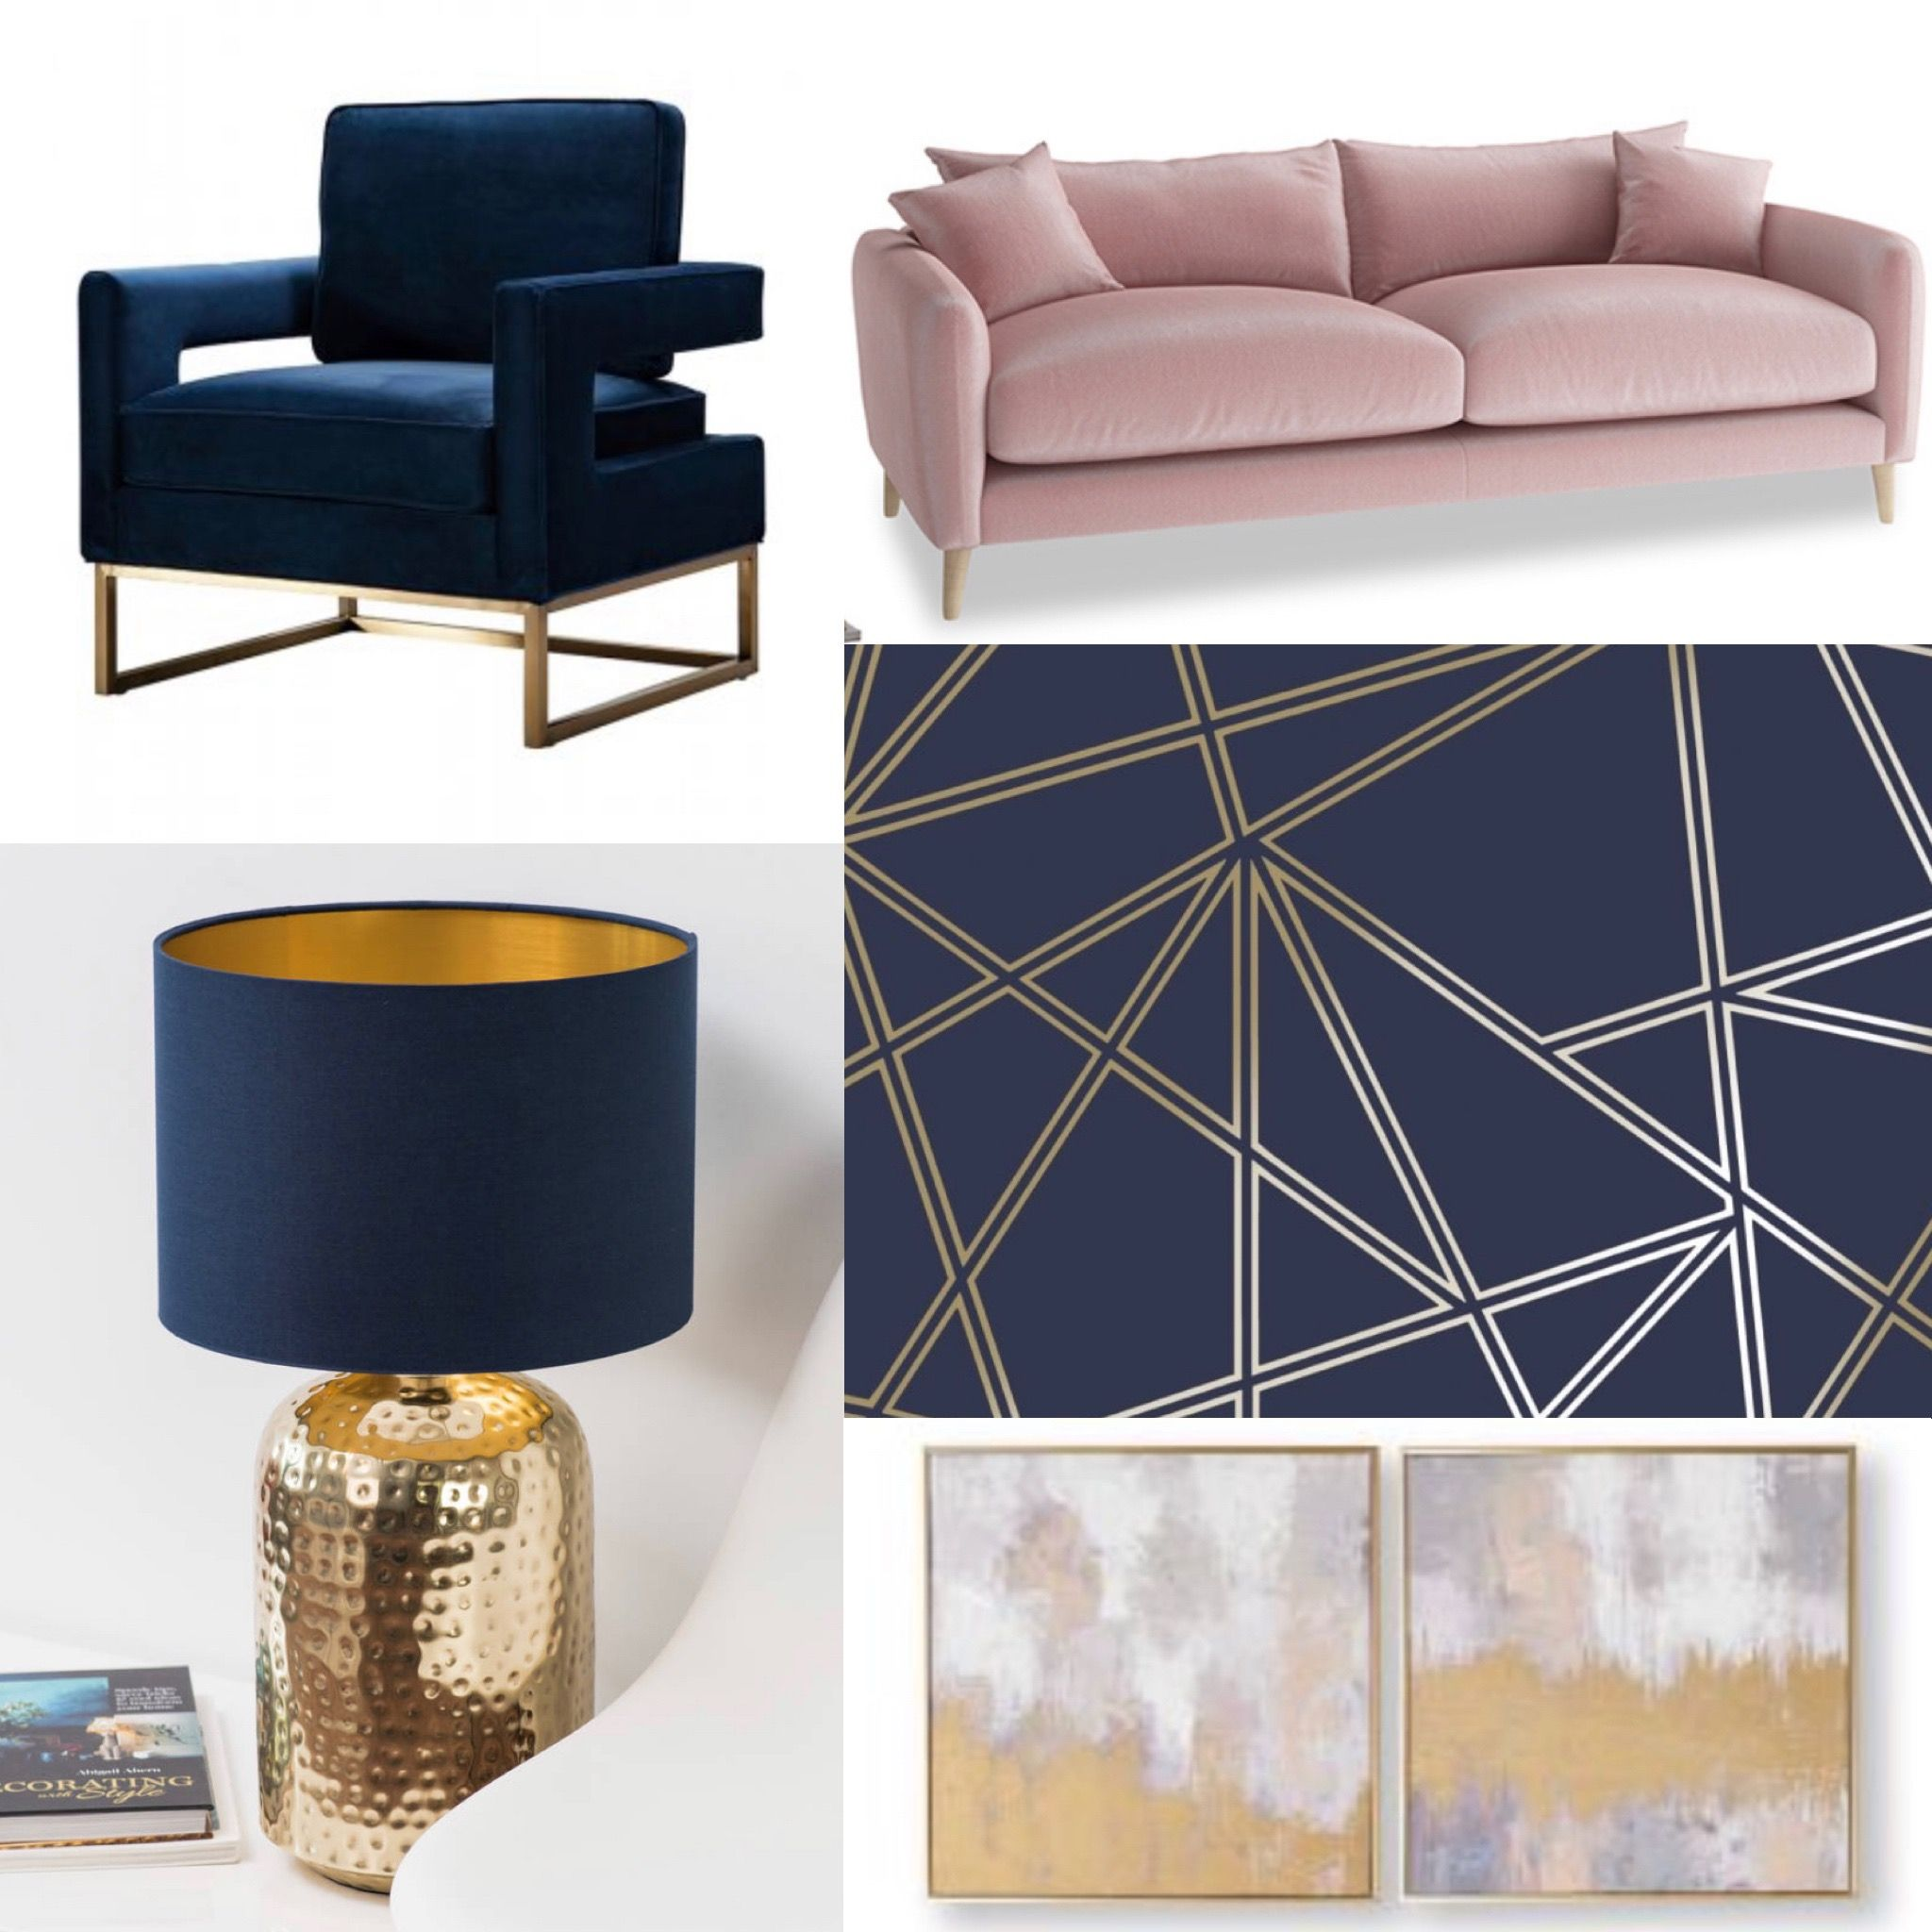 My Blush Pink Navy Gold Living Room Idea Gold Living Room Blue And Gold Living Room Gold Living Room Decor #navy #blue #and #gold #living #room #decor